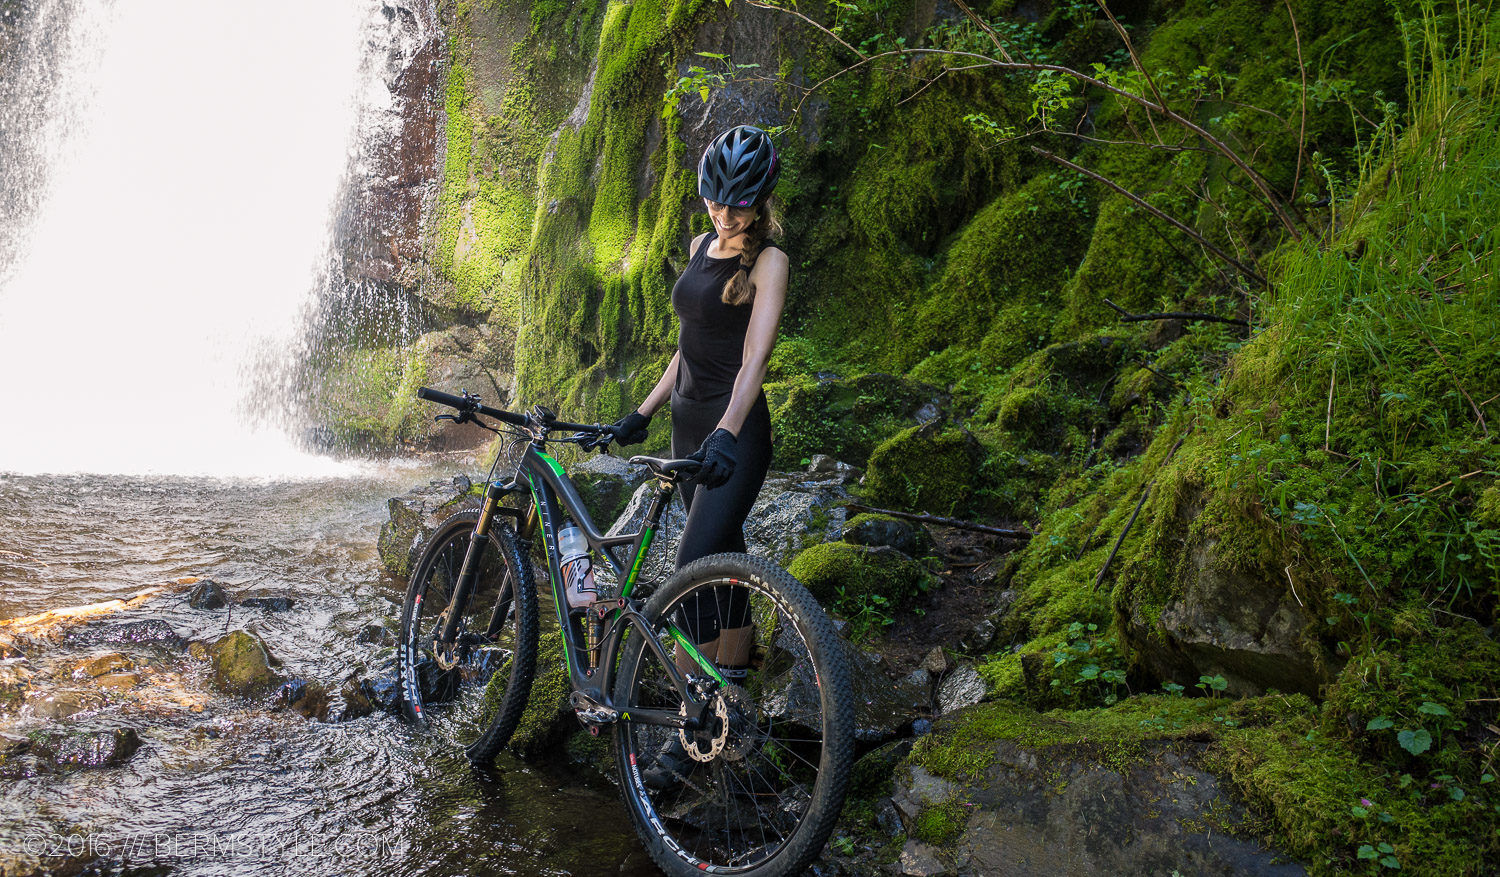 Inga Beck poses with the RKT 9 RDO at Hidden Falls on the Tarbell Trail.